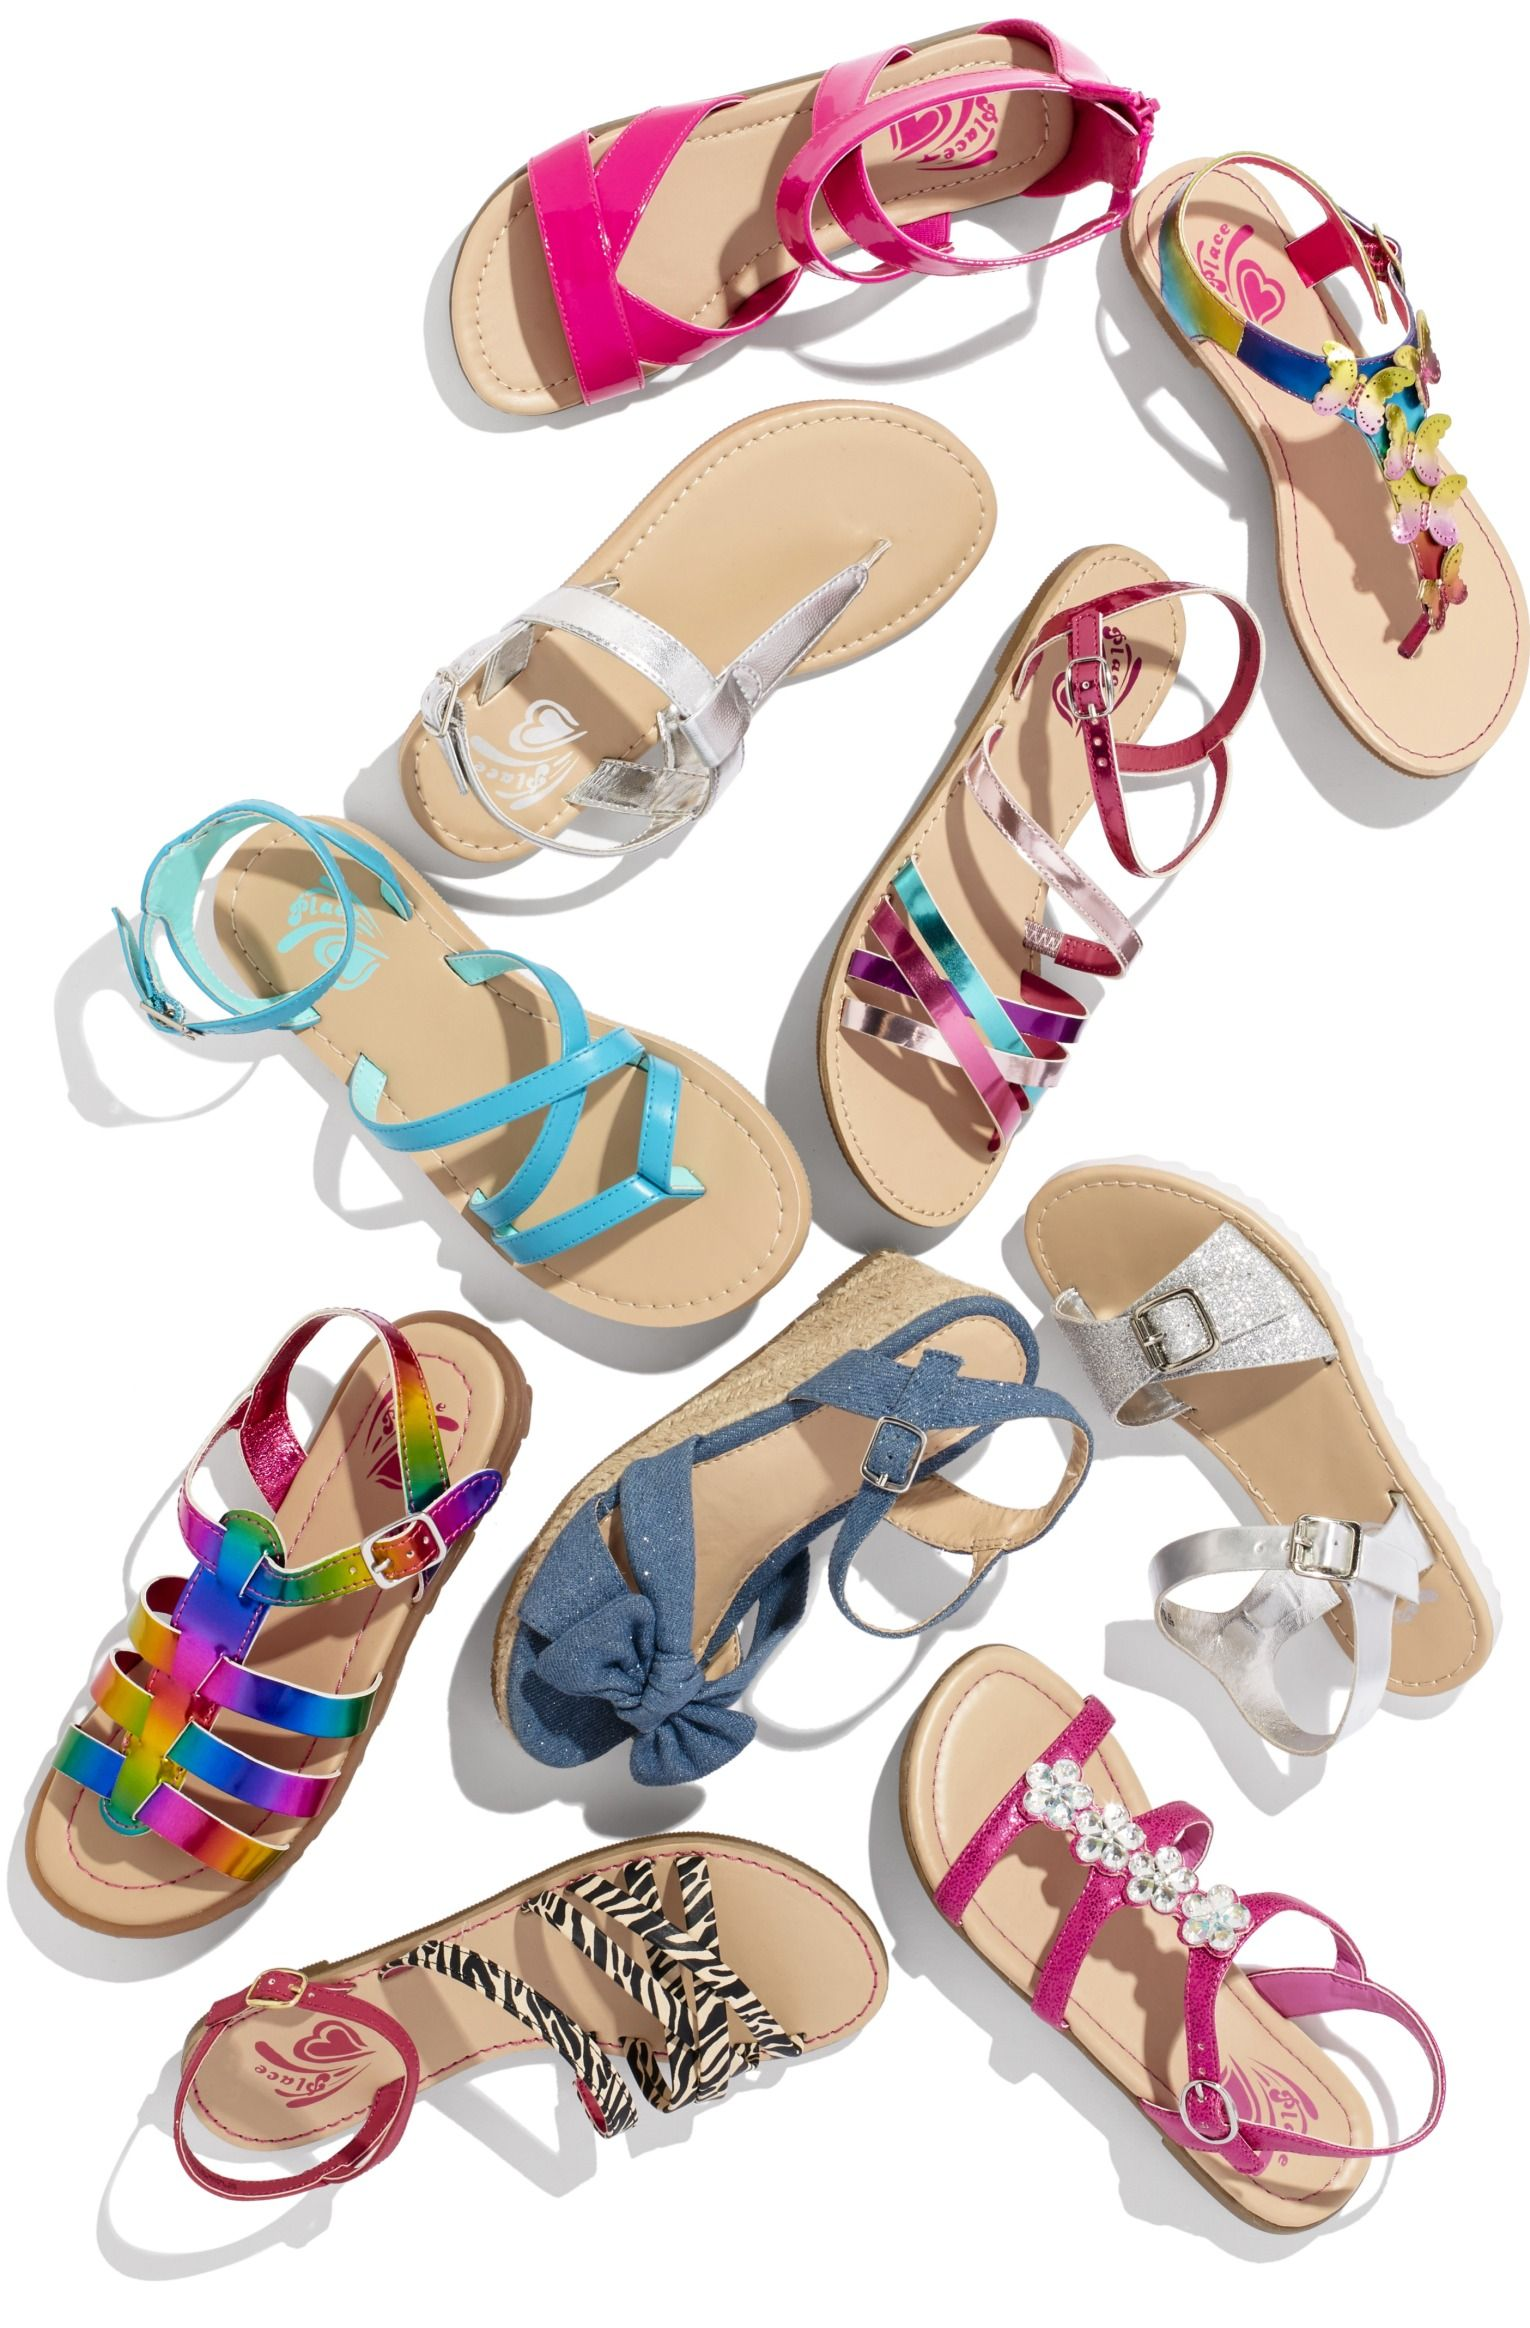 Flip flops clipart girl sandal. Girls sandals kids shoes